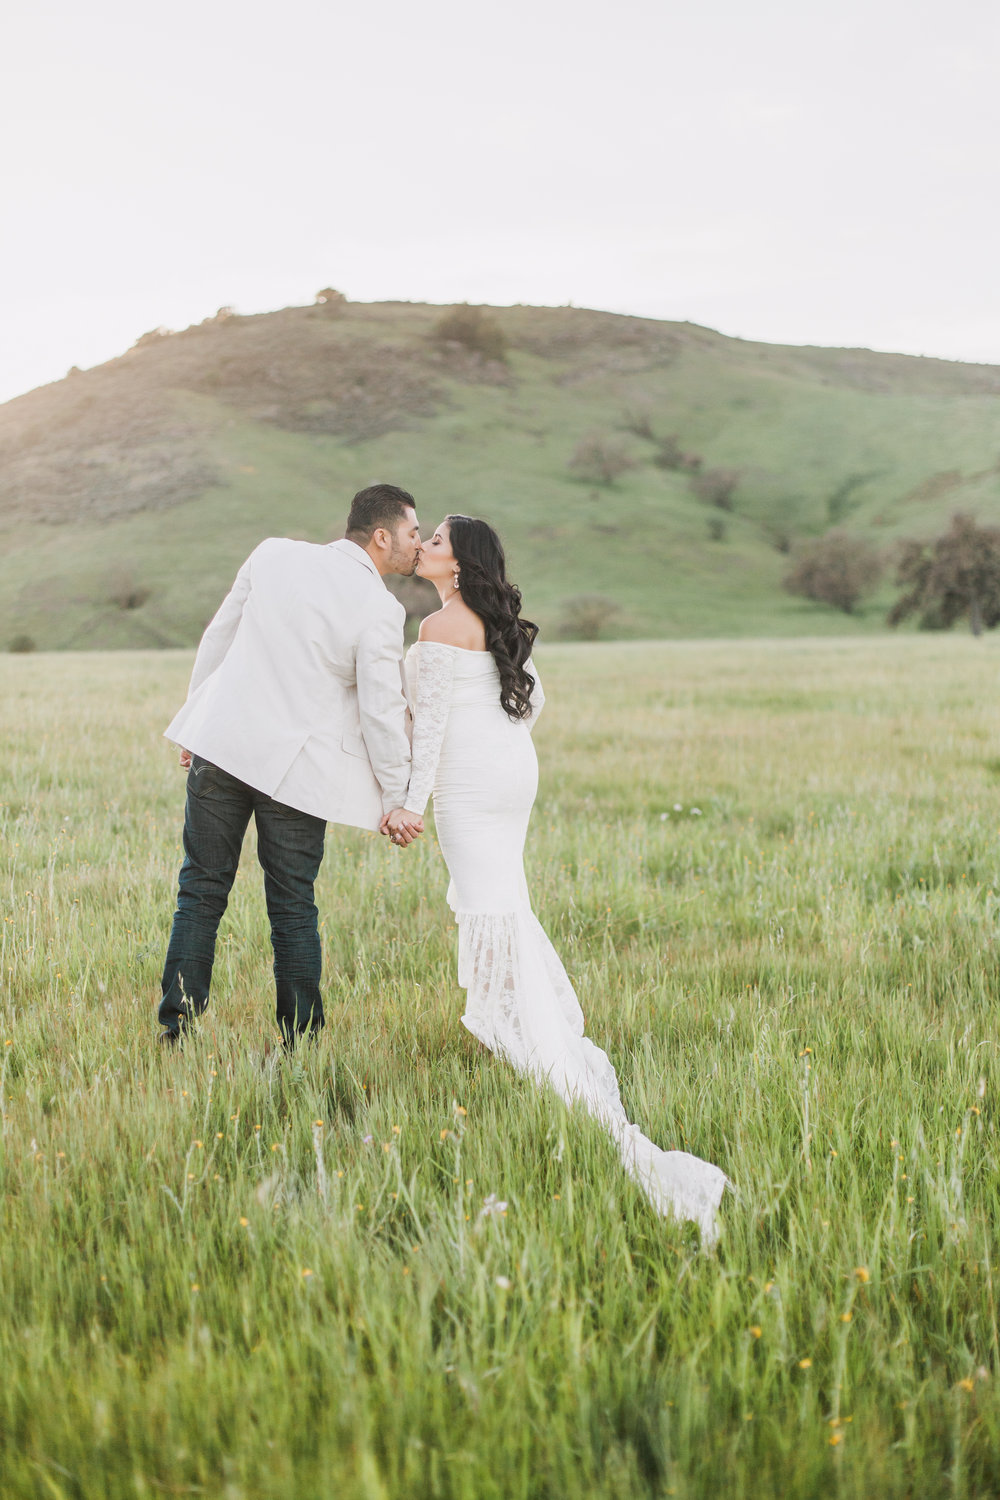 Couple kissing in grass field during maternity session in San Jose, California.